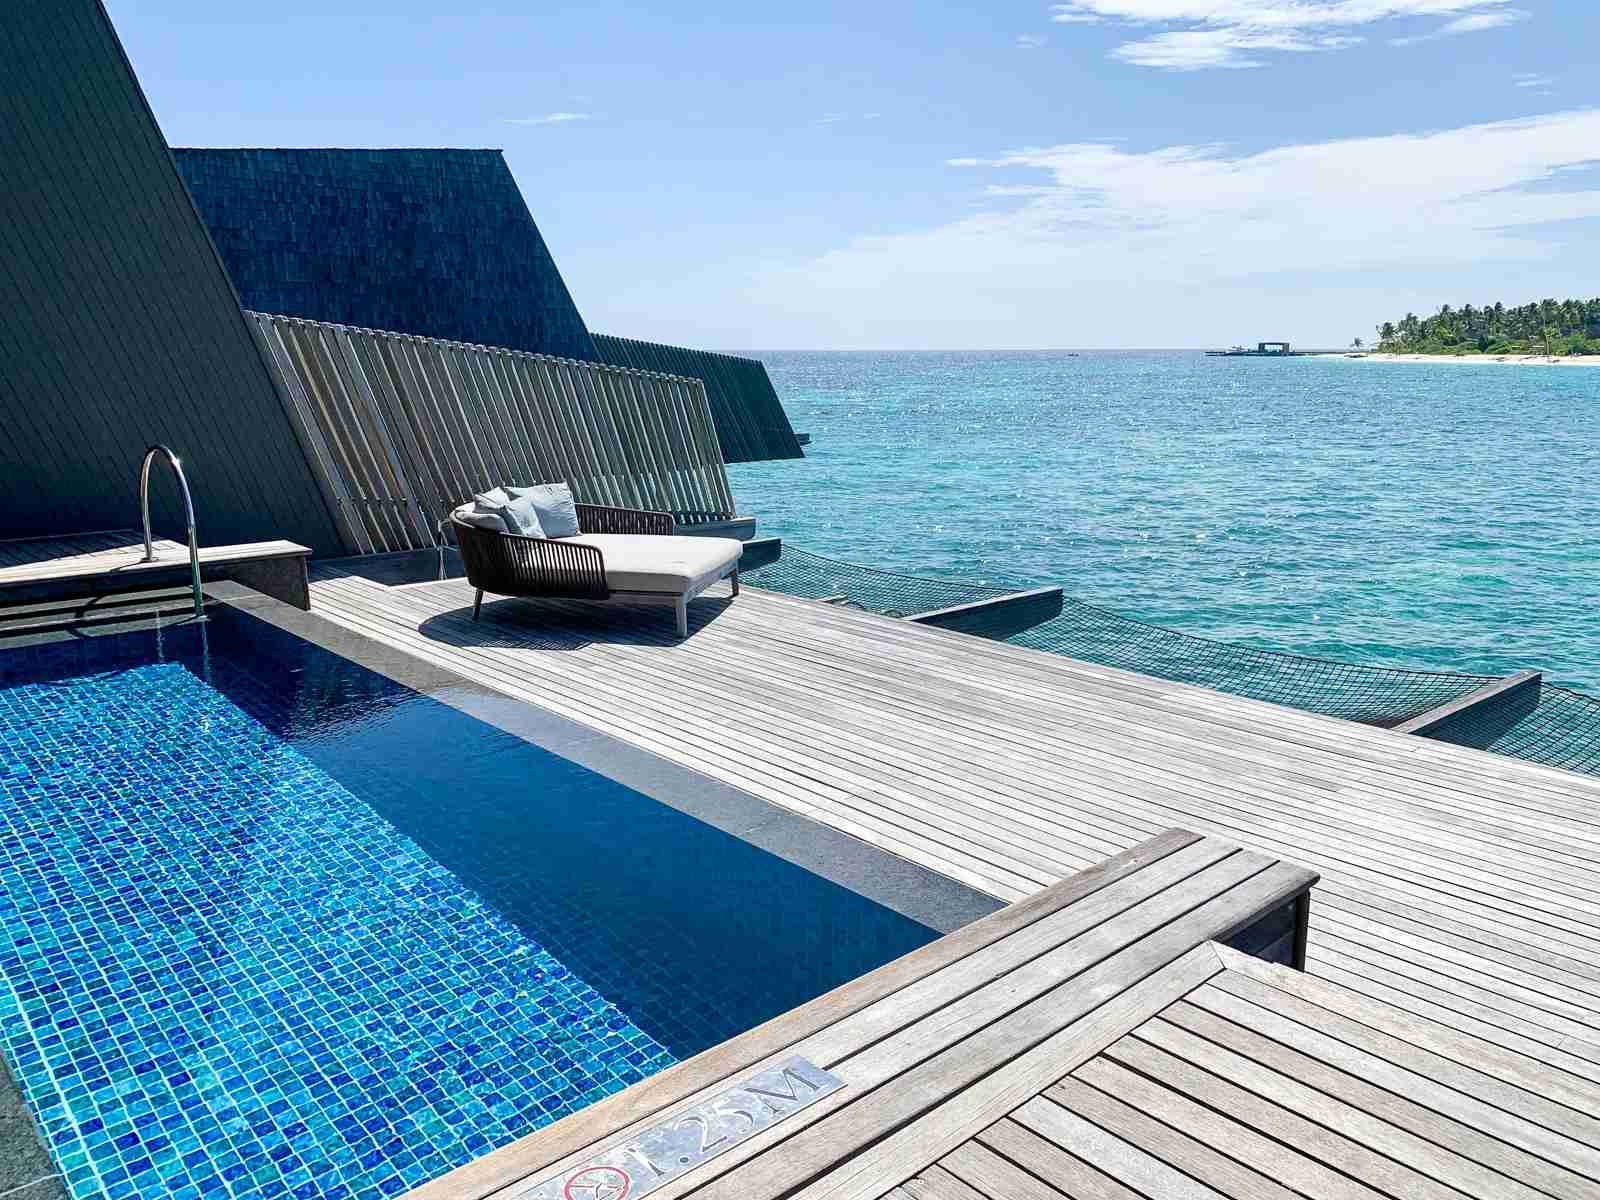 St. Regis Maldives (Photo by Ethan Steinberg/The Points Guy)